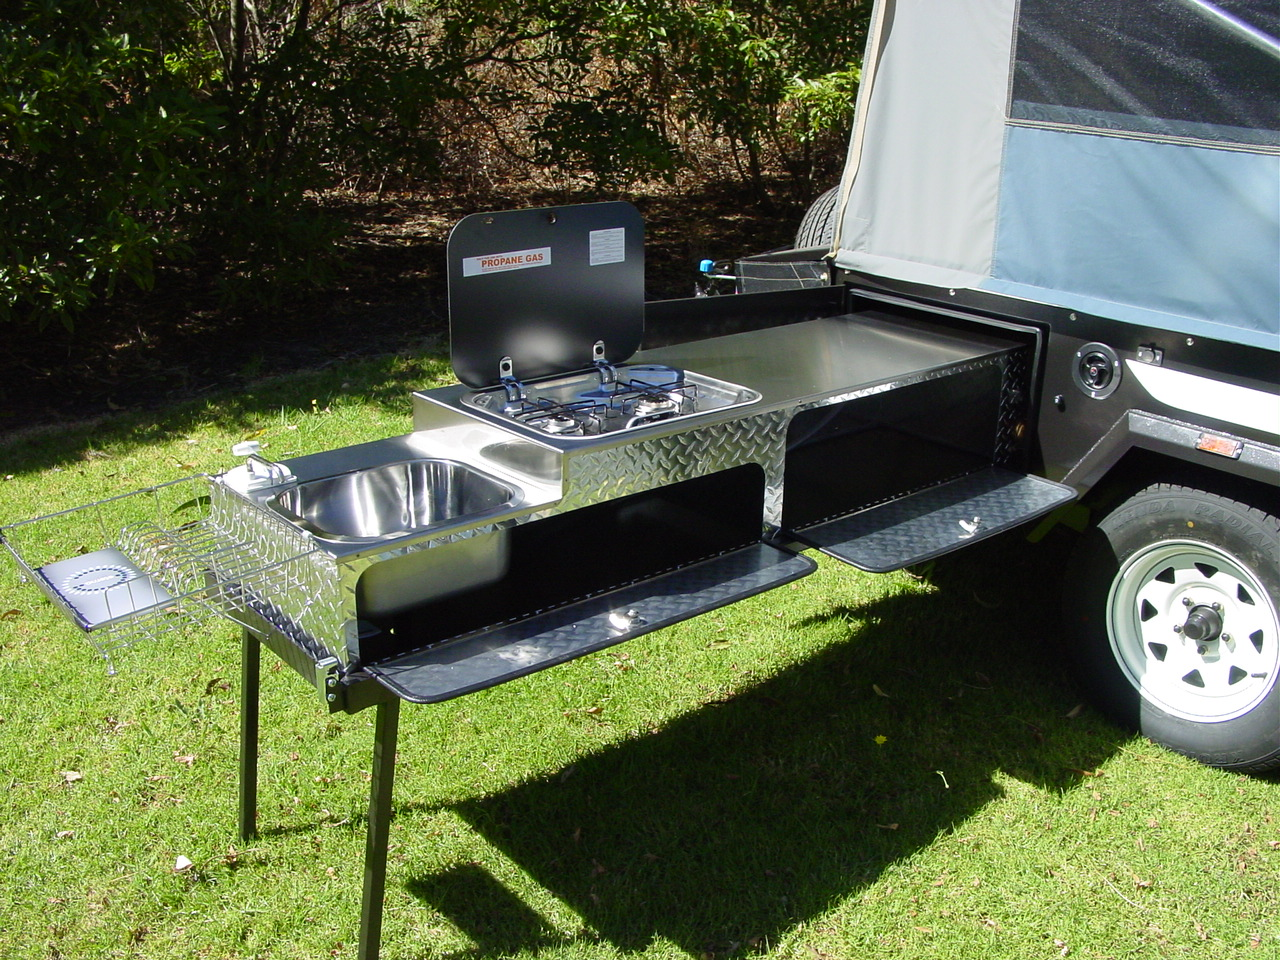 Camper Trailer Kitchen Designs Newell On Road Camper Outback Campers Camper Trailers Melbourne